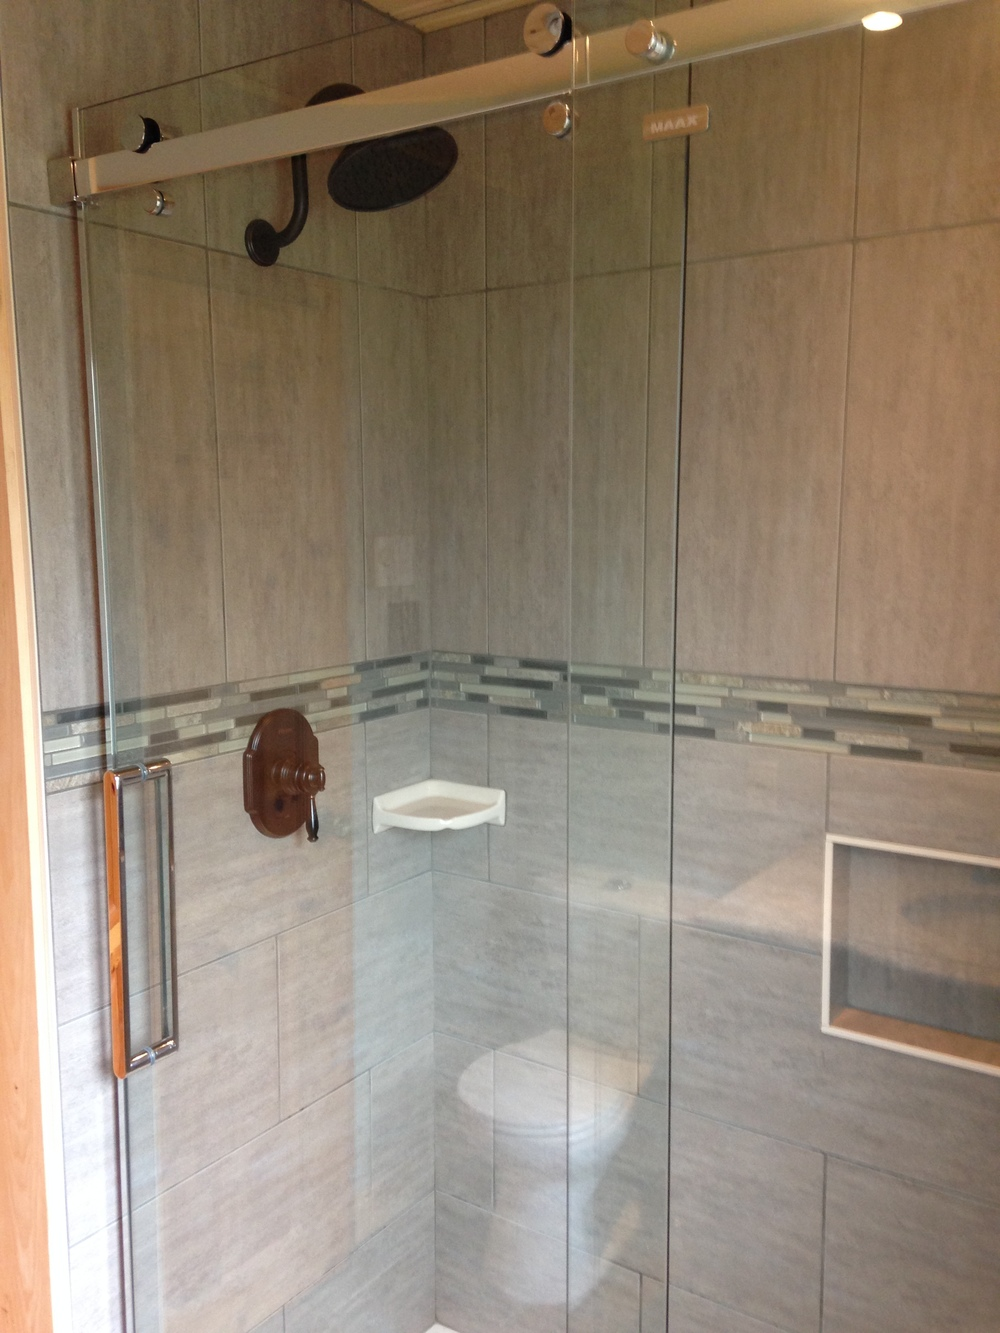 New tiled shower with glass doors and new hardware